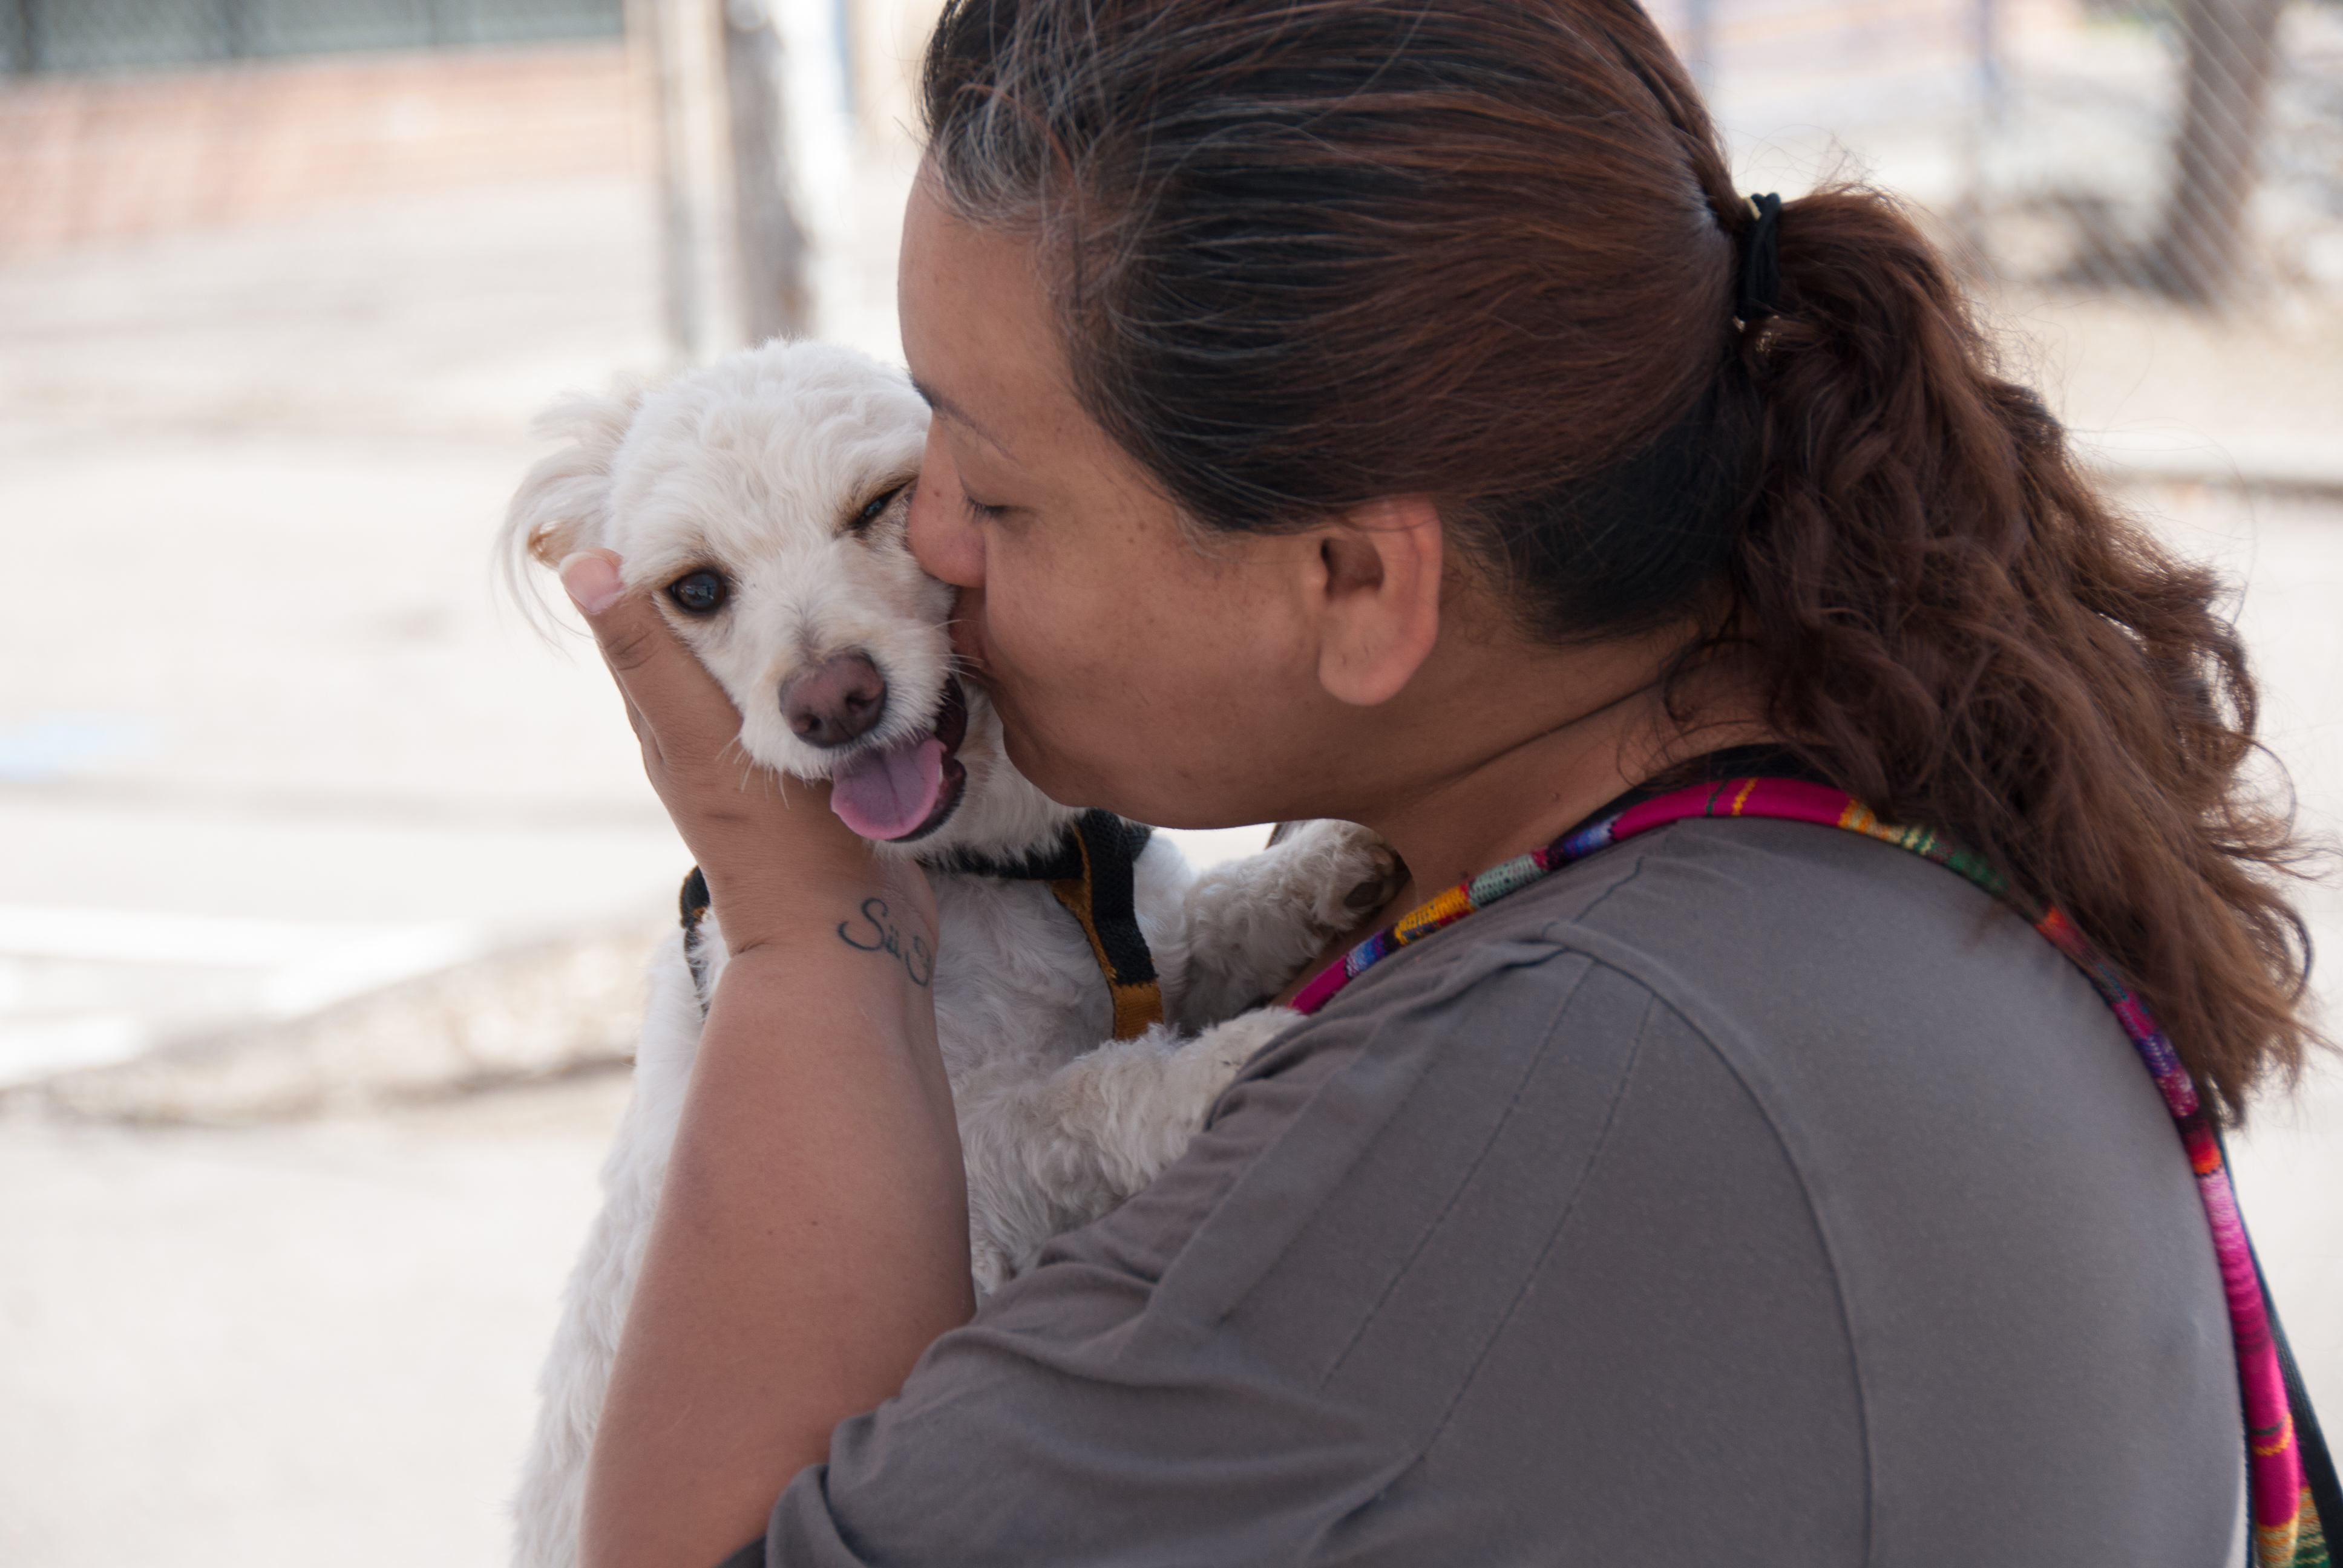 Photo of Safe Haven Program pet owner with small dog